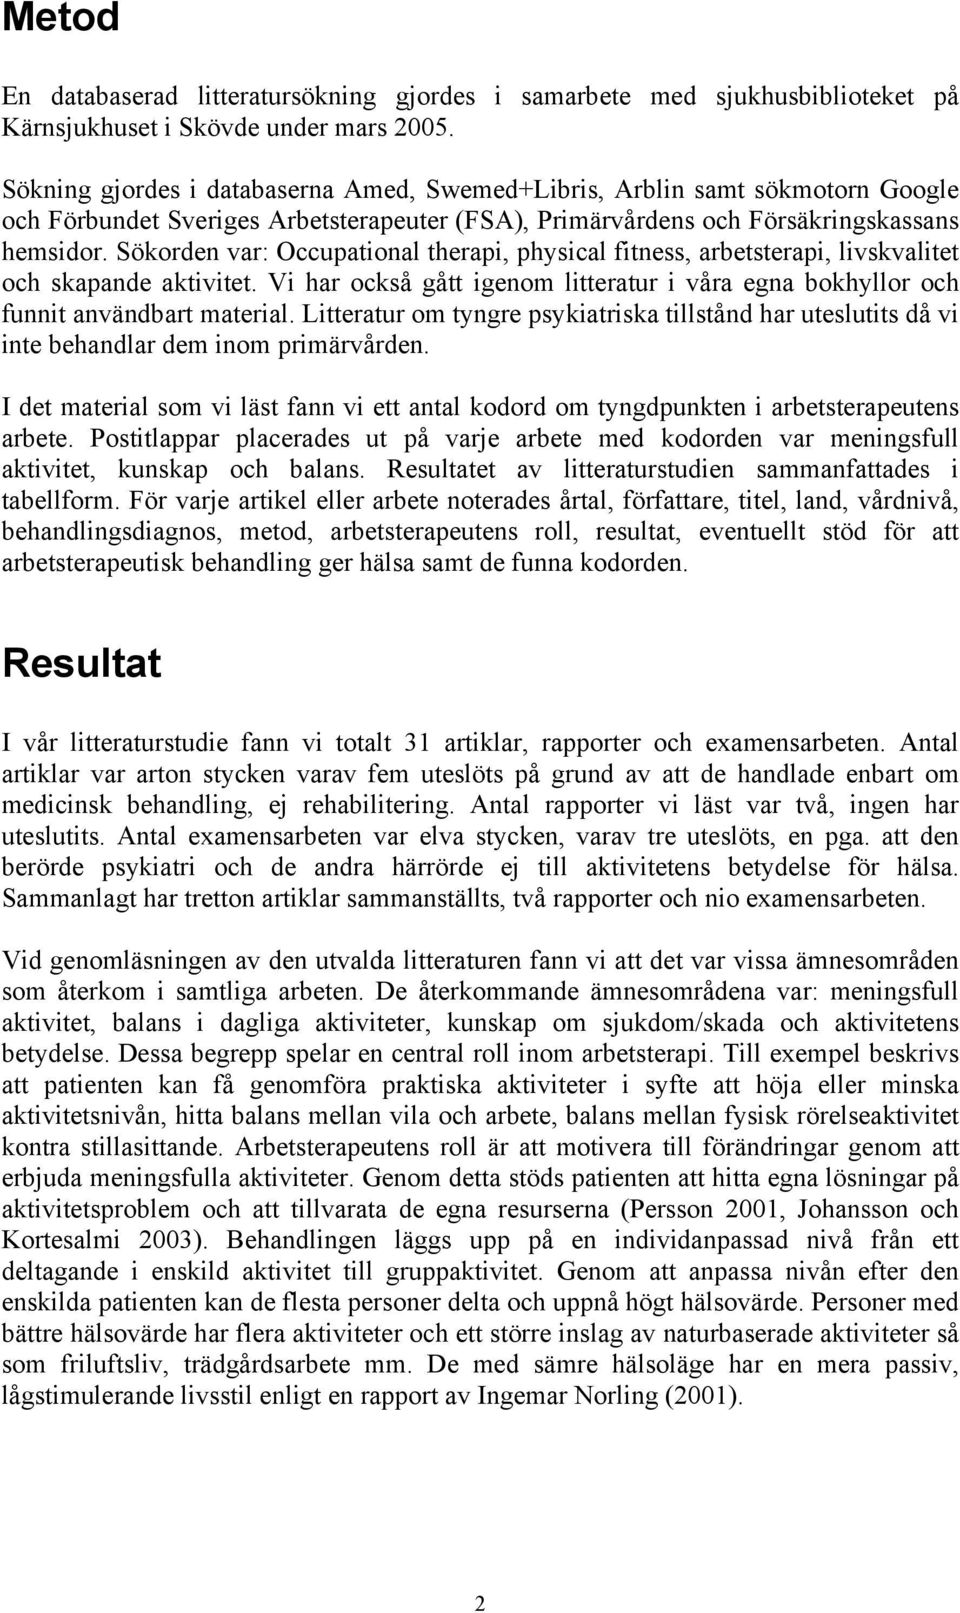 Sökorden var: Occupational therapi, physical fitness, arbetsterapi, livskvalitet och skapande. Vi har också gått igenom litteratur i våra egna bokhyllor och funnit användbart material.